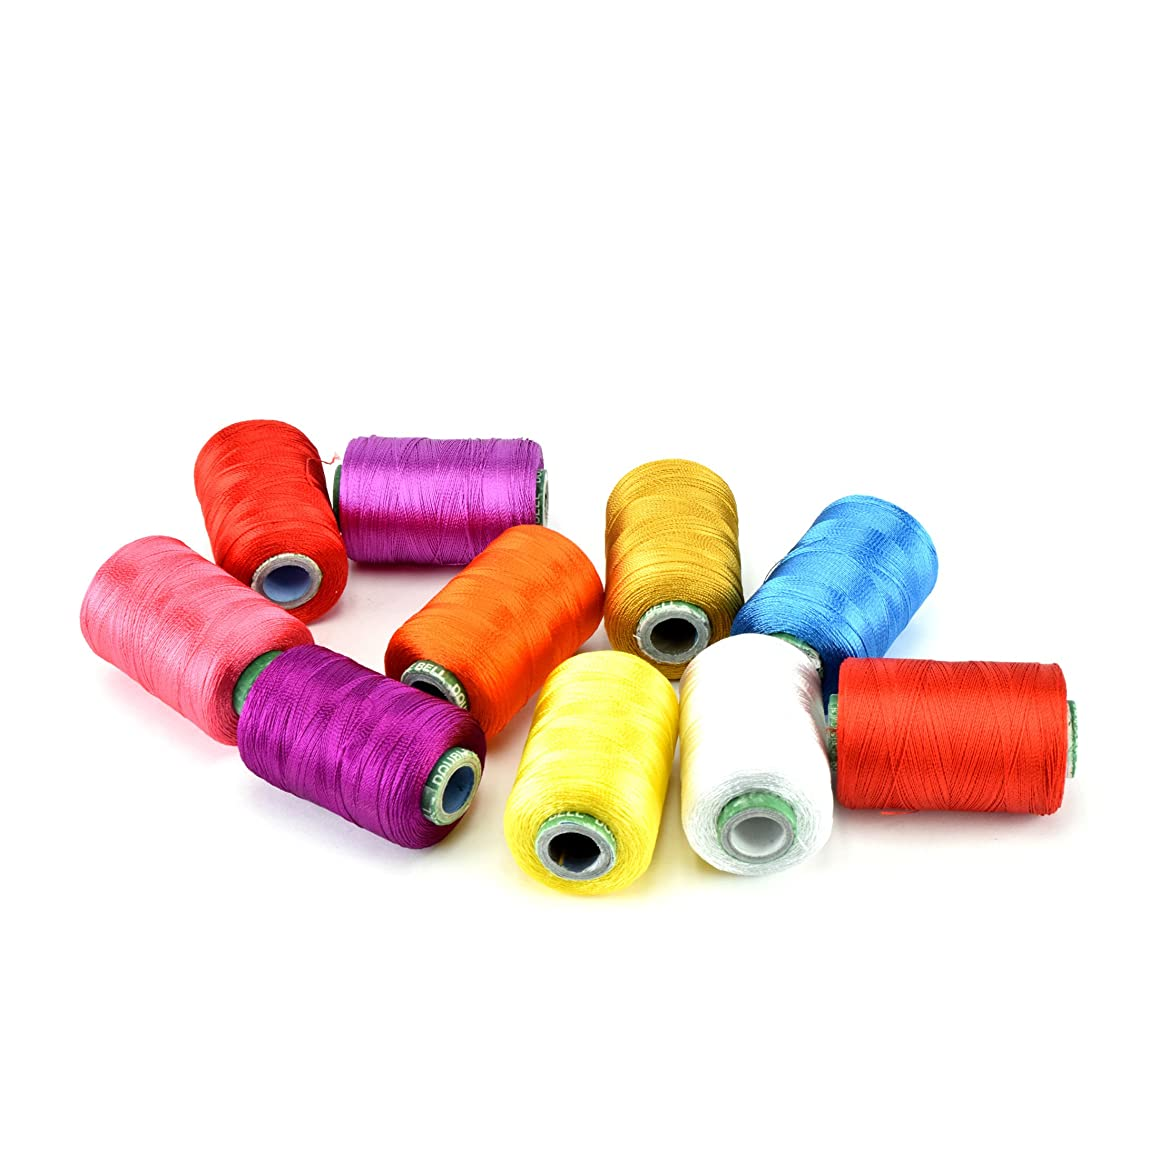 Unobite 10 Assorted Color Silk Embroidery Thread 550 Yards Each Spool